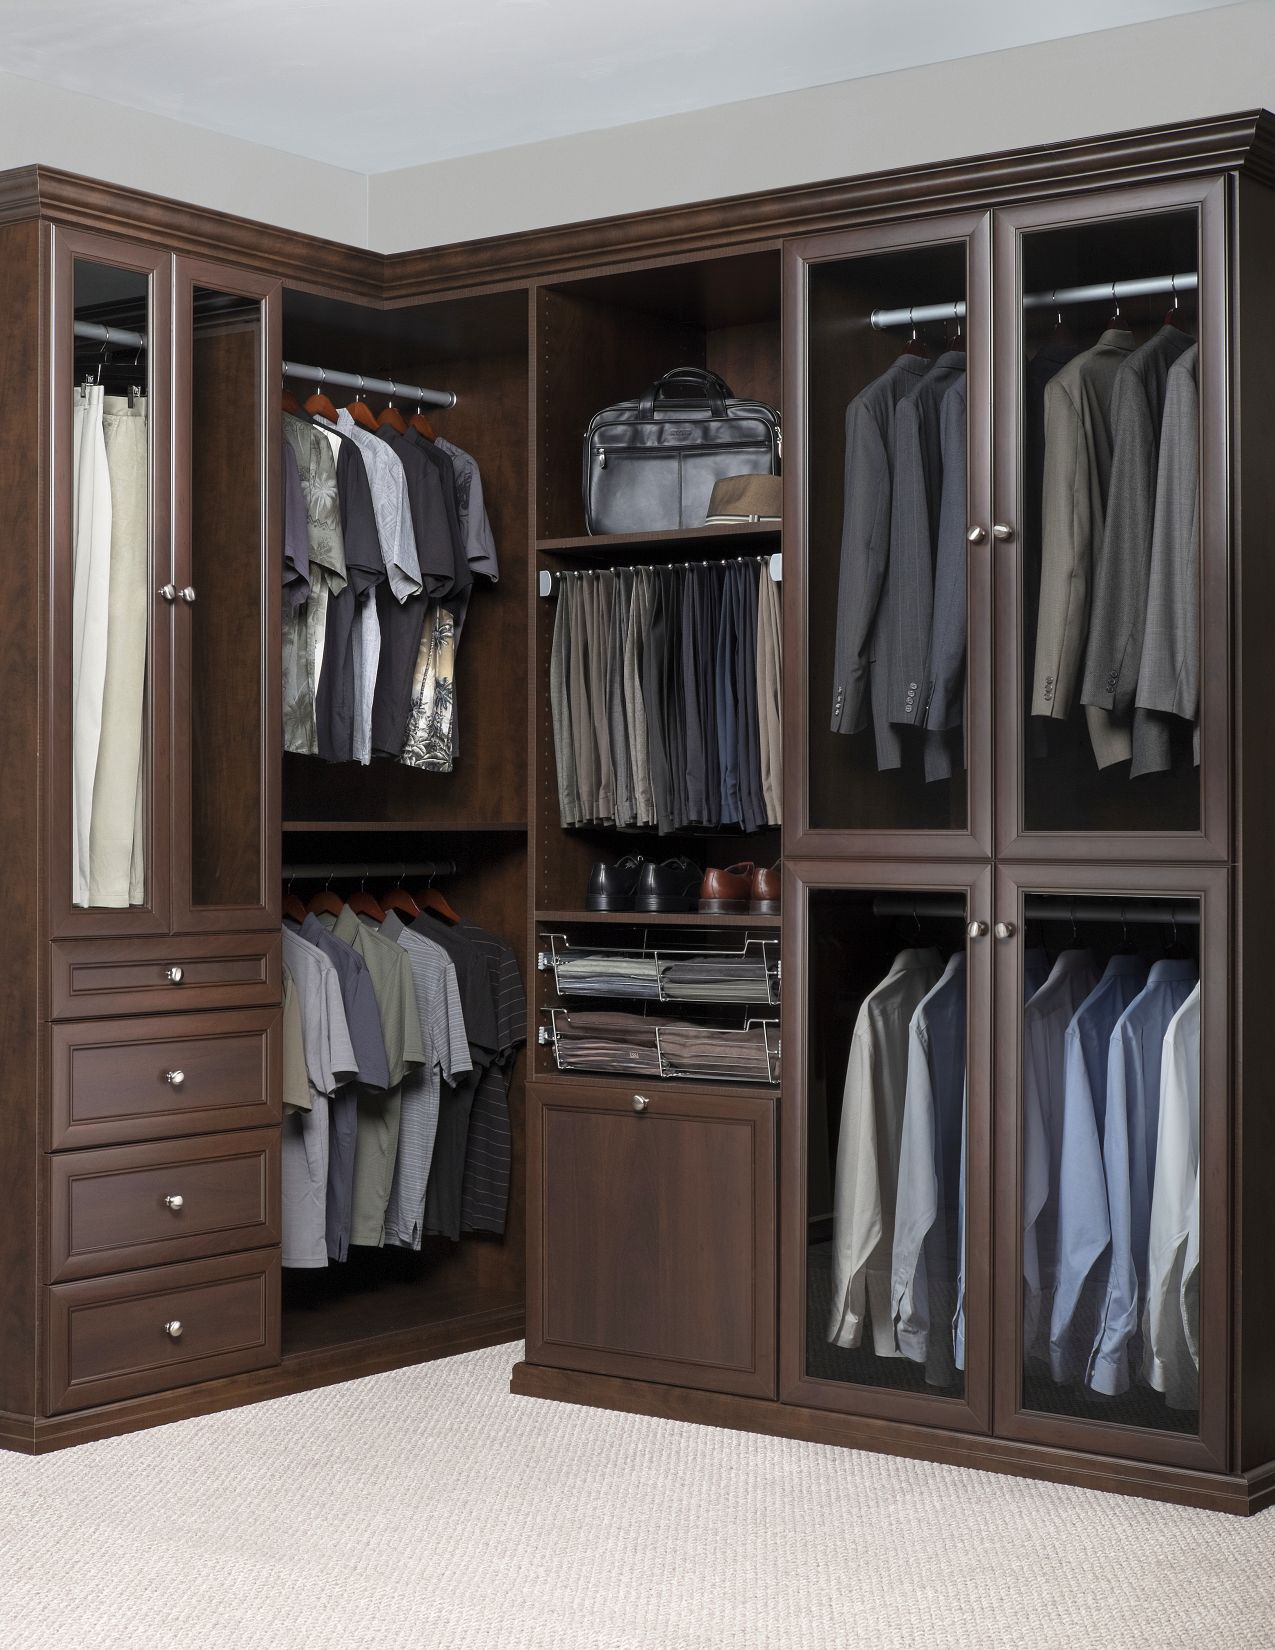 closet walkin closetstyles in for accessories trends empty wall walk closets